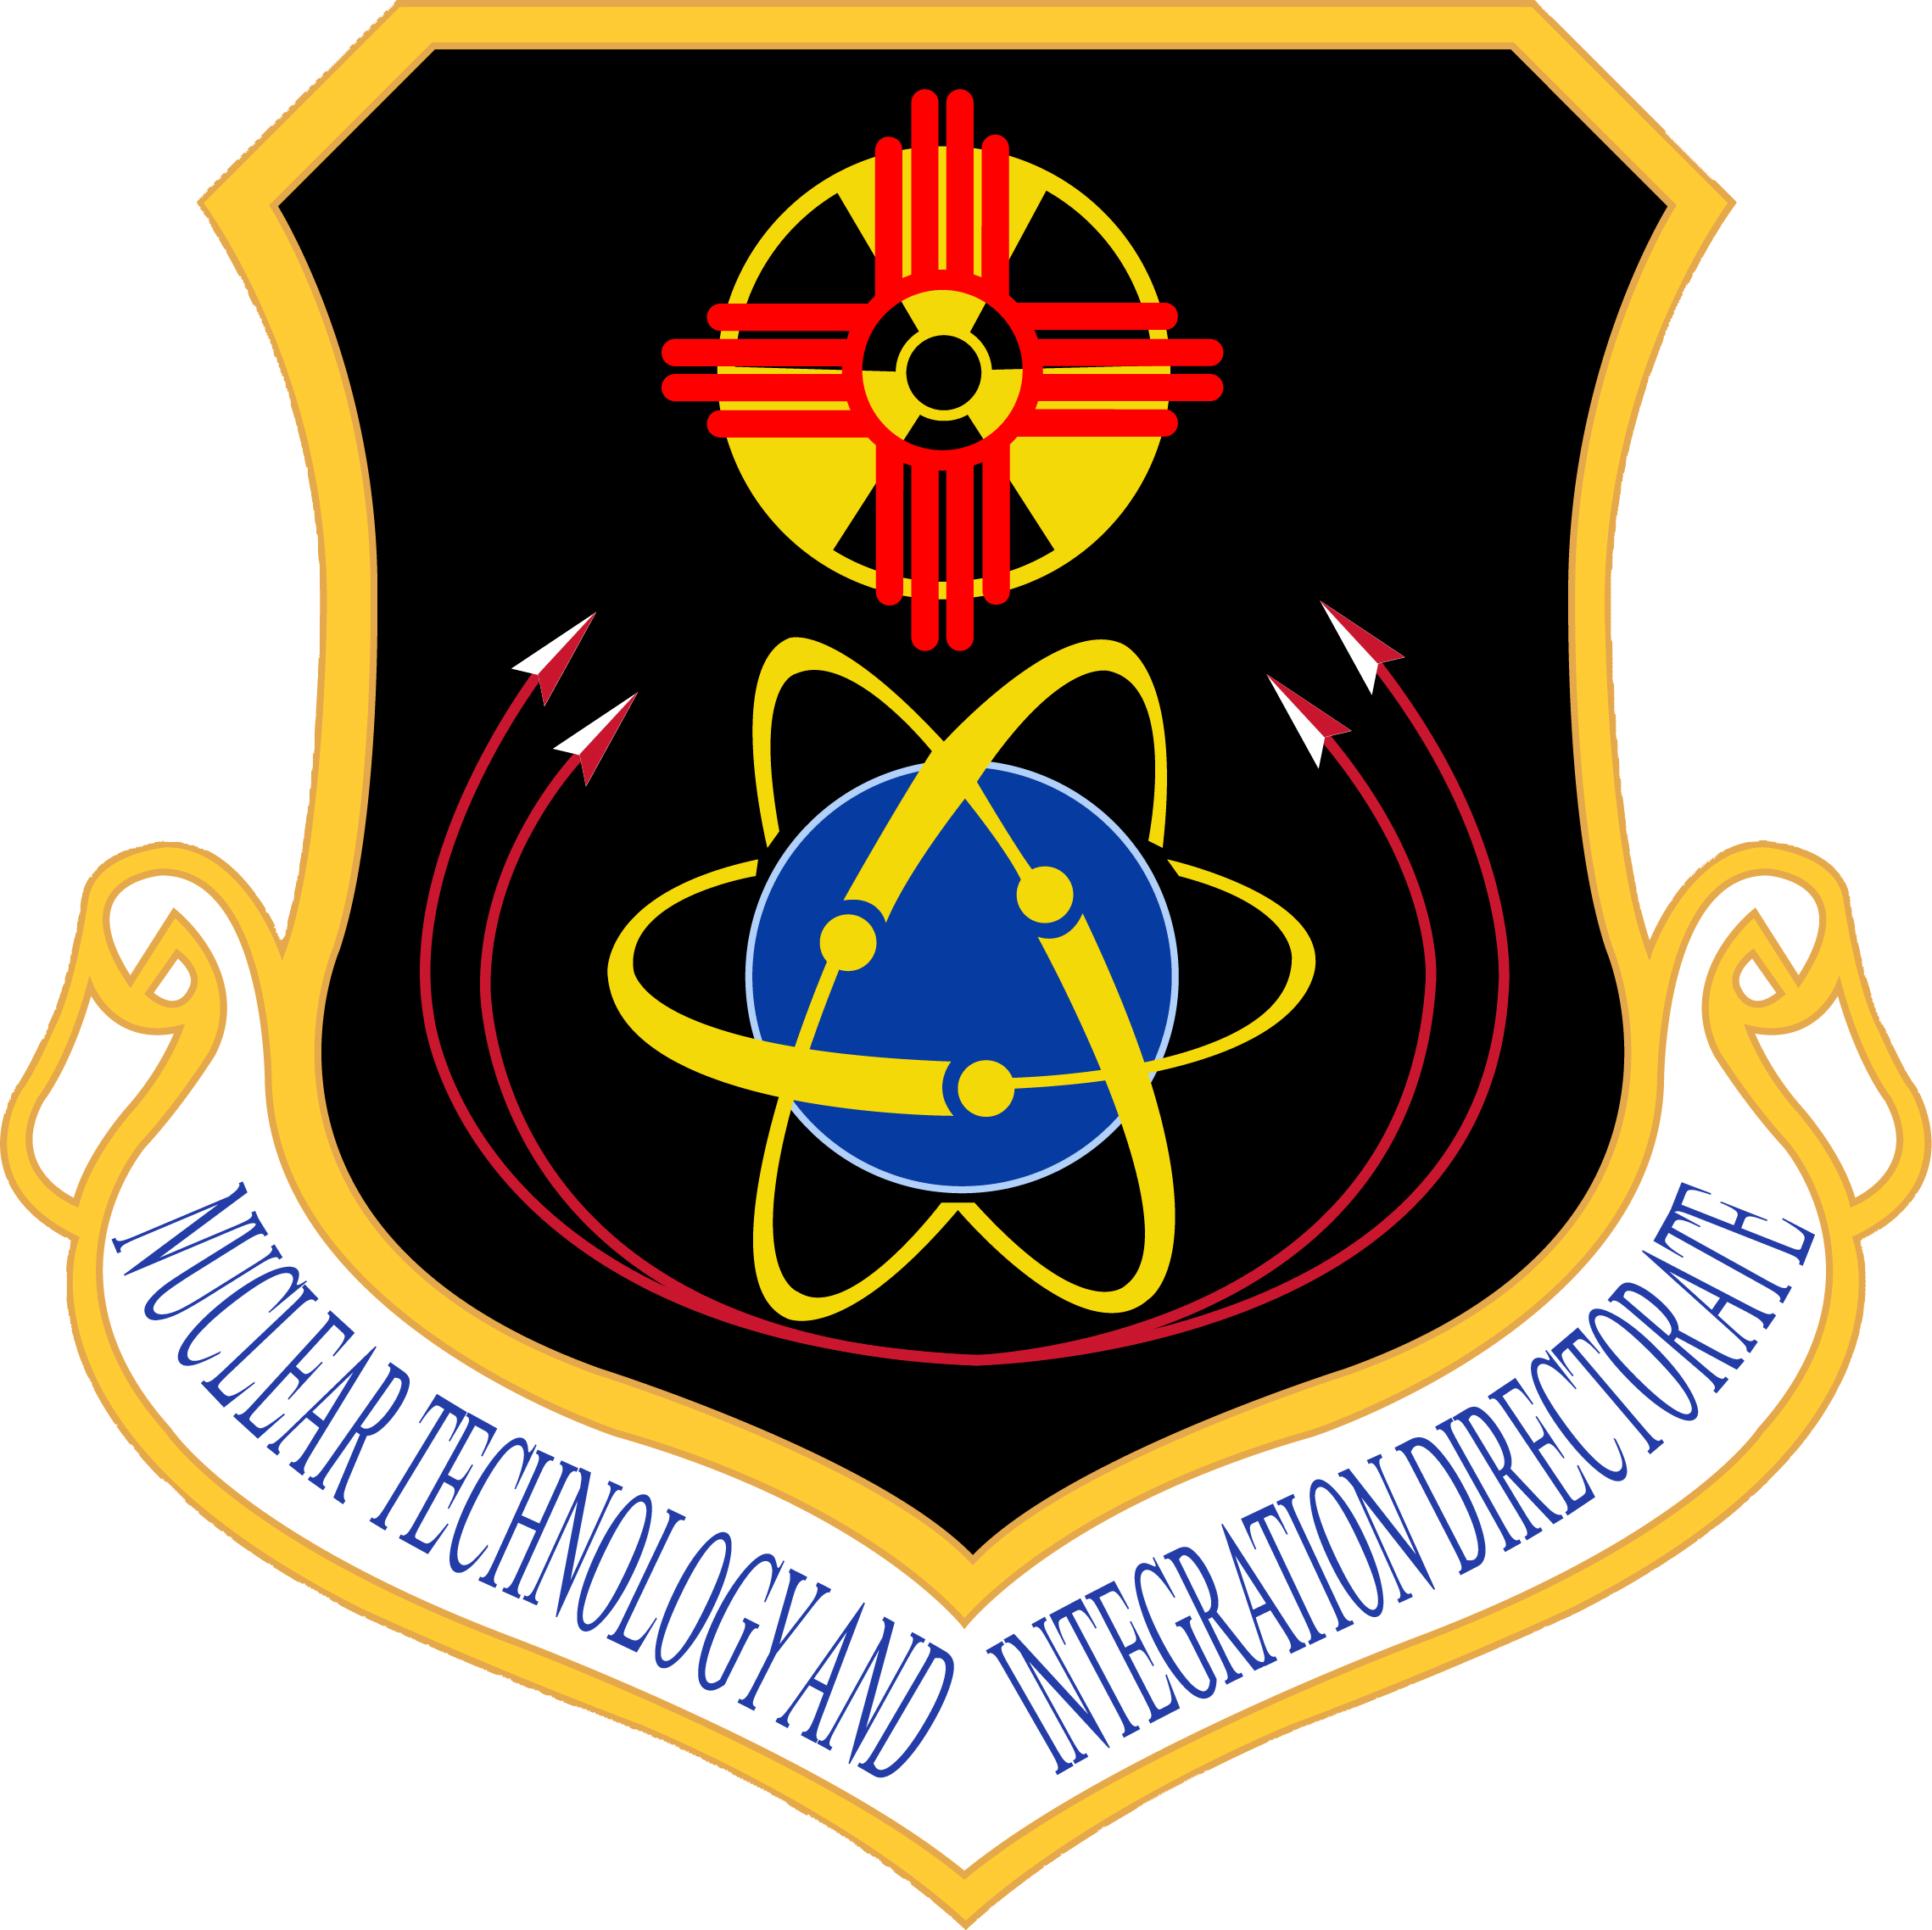 Nuclear Technology and Integration logo